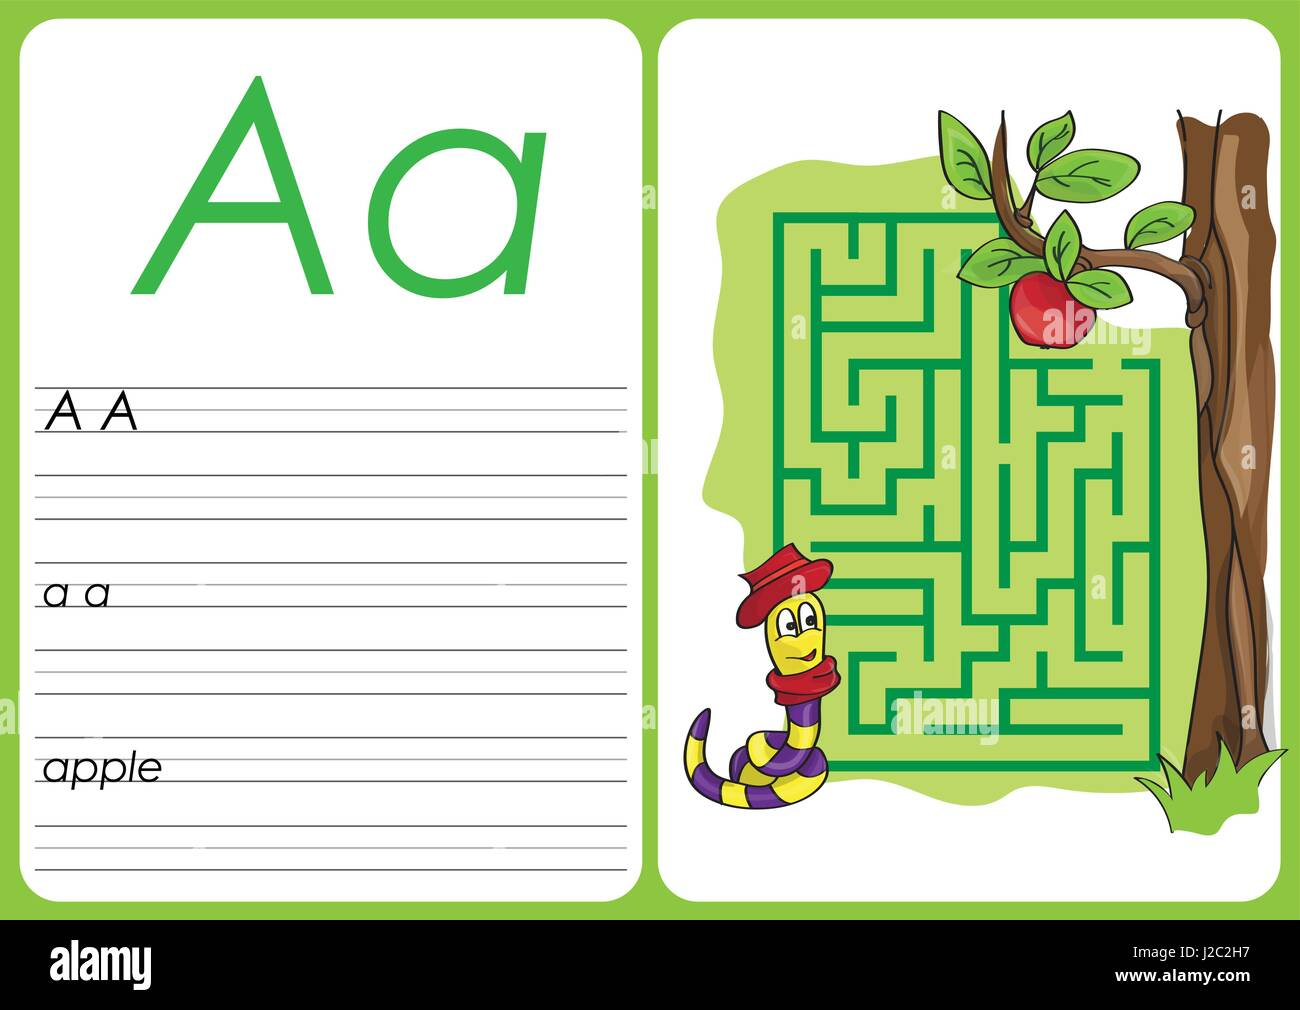 Coloring Alphabet For Kids Stock Photos & Coloring Alphabet For Kids ...